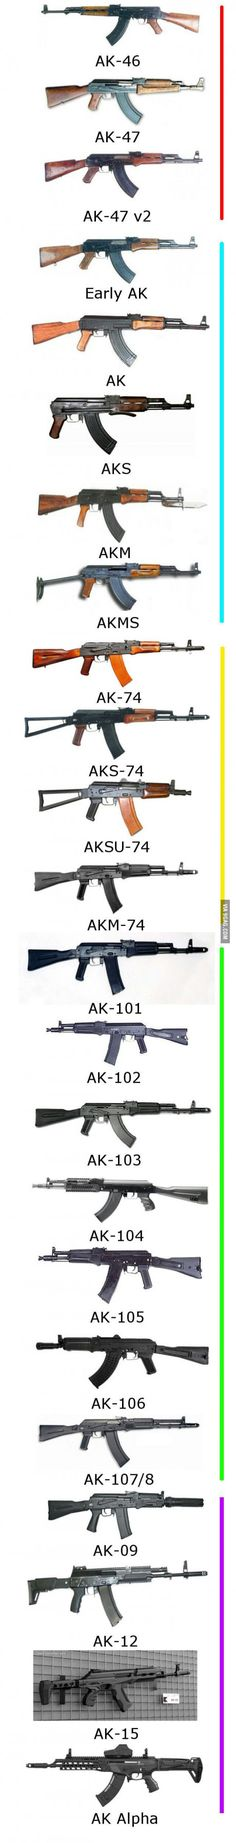 "Not only ""AK-47"""